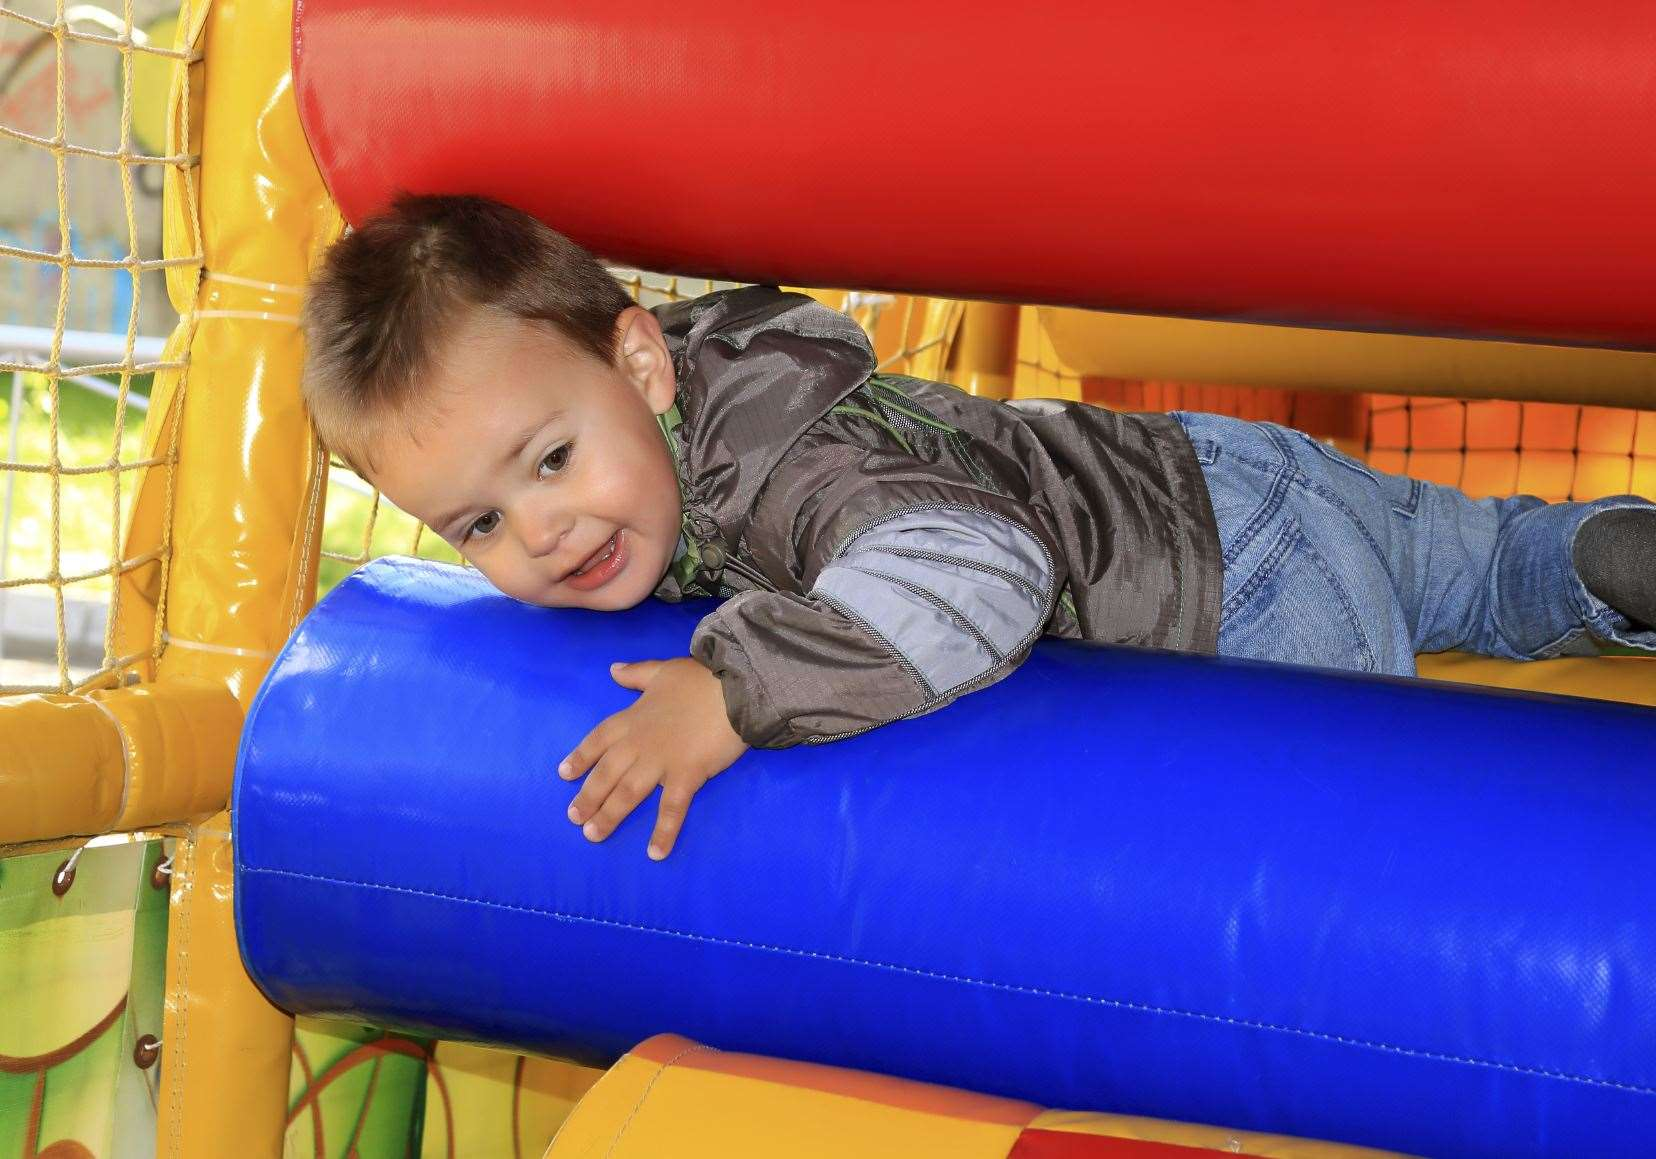 Soft play centres were given the green light to reopen, with new restrictions, back in August. (Stock image).